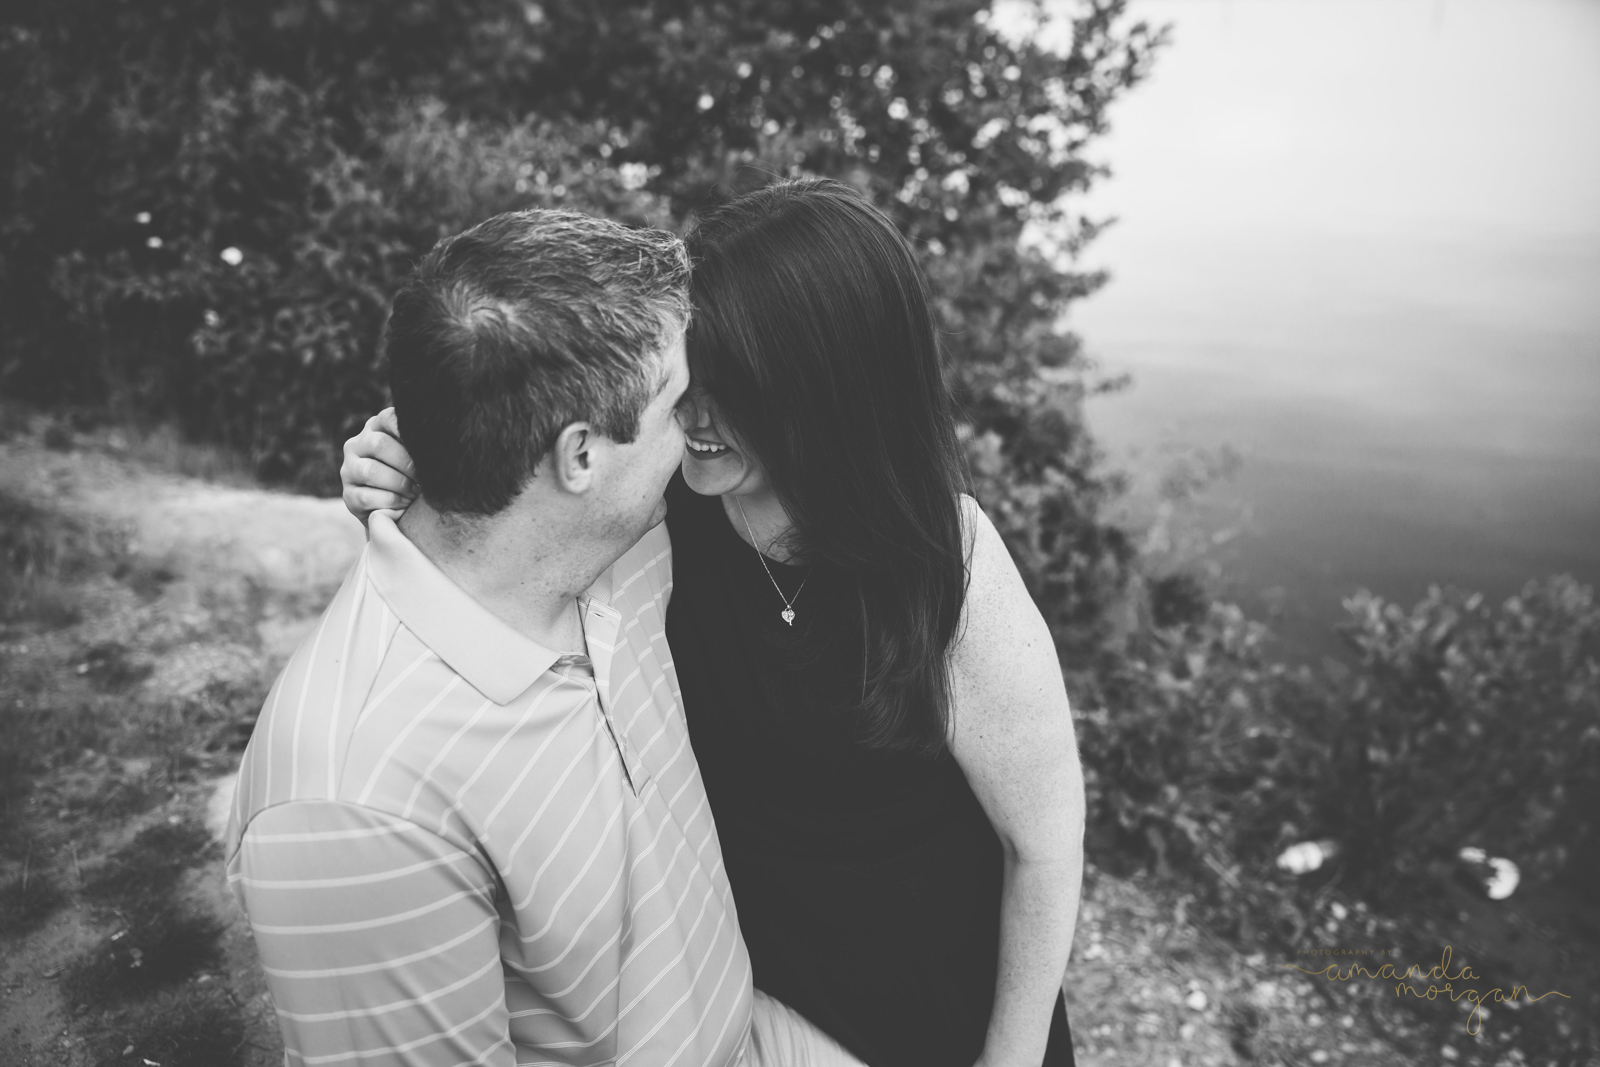 Old-Stone-Church-Engagement-Session-Amanda-Morgan-4.jpg